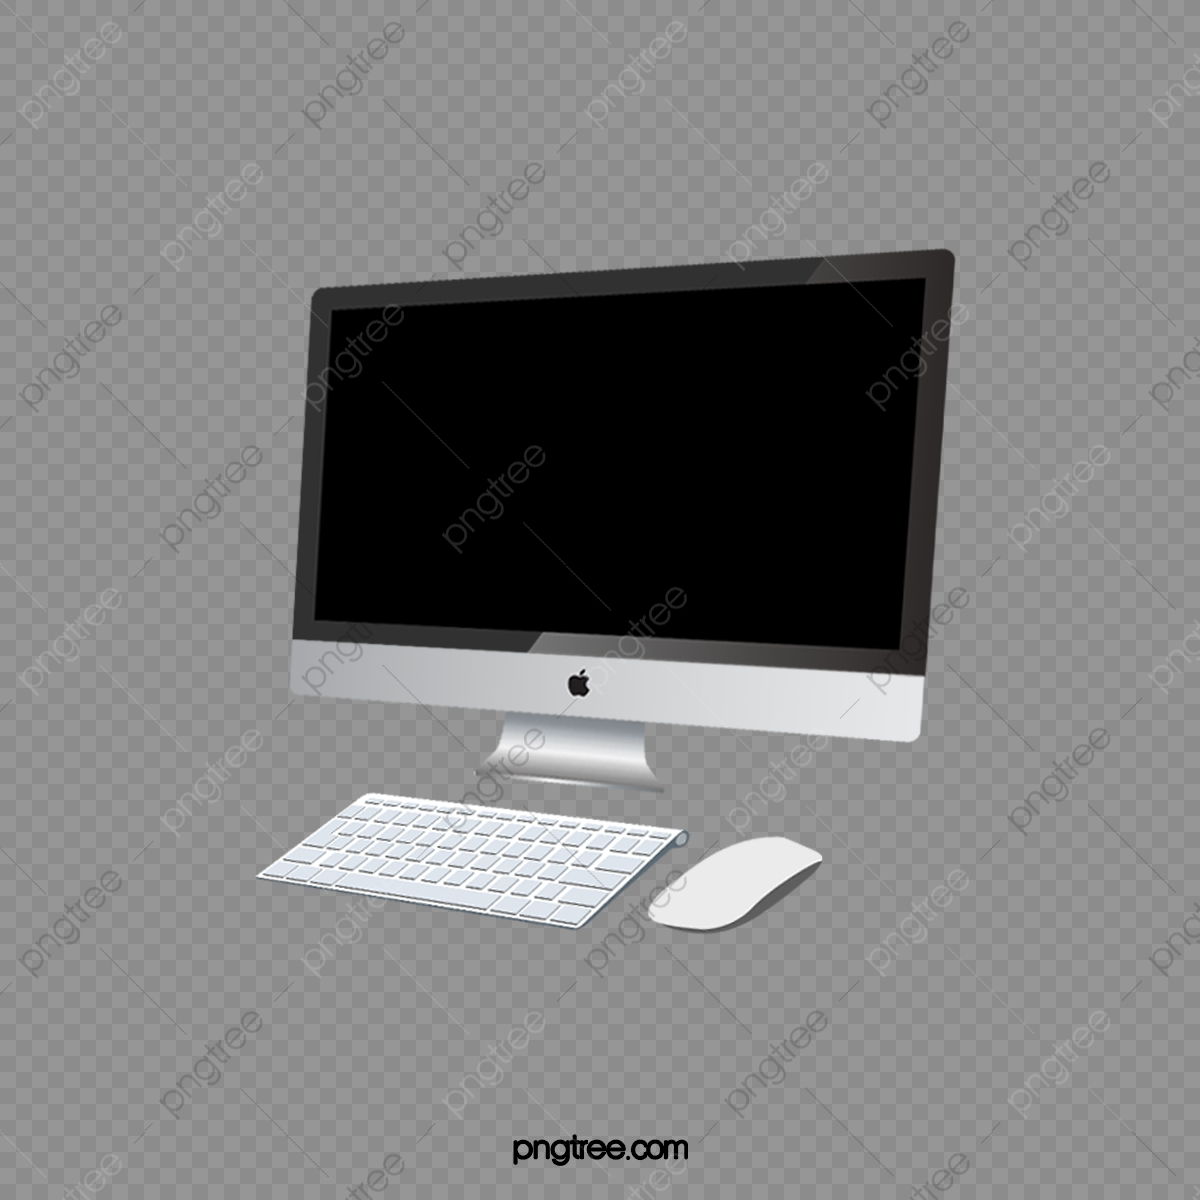 Clipart For Apple Mac Free Computer Pro Macintosh Monitor - App Store - Free  Transparent PNG Clipart Images Download